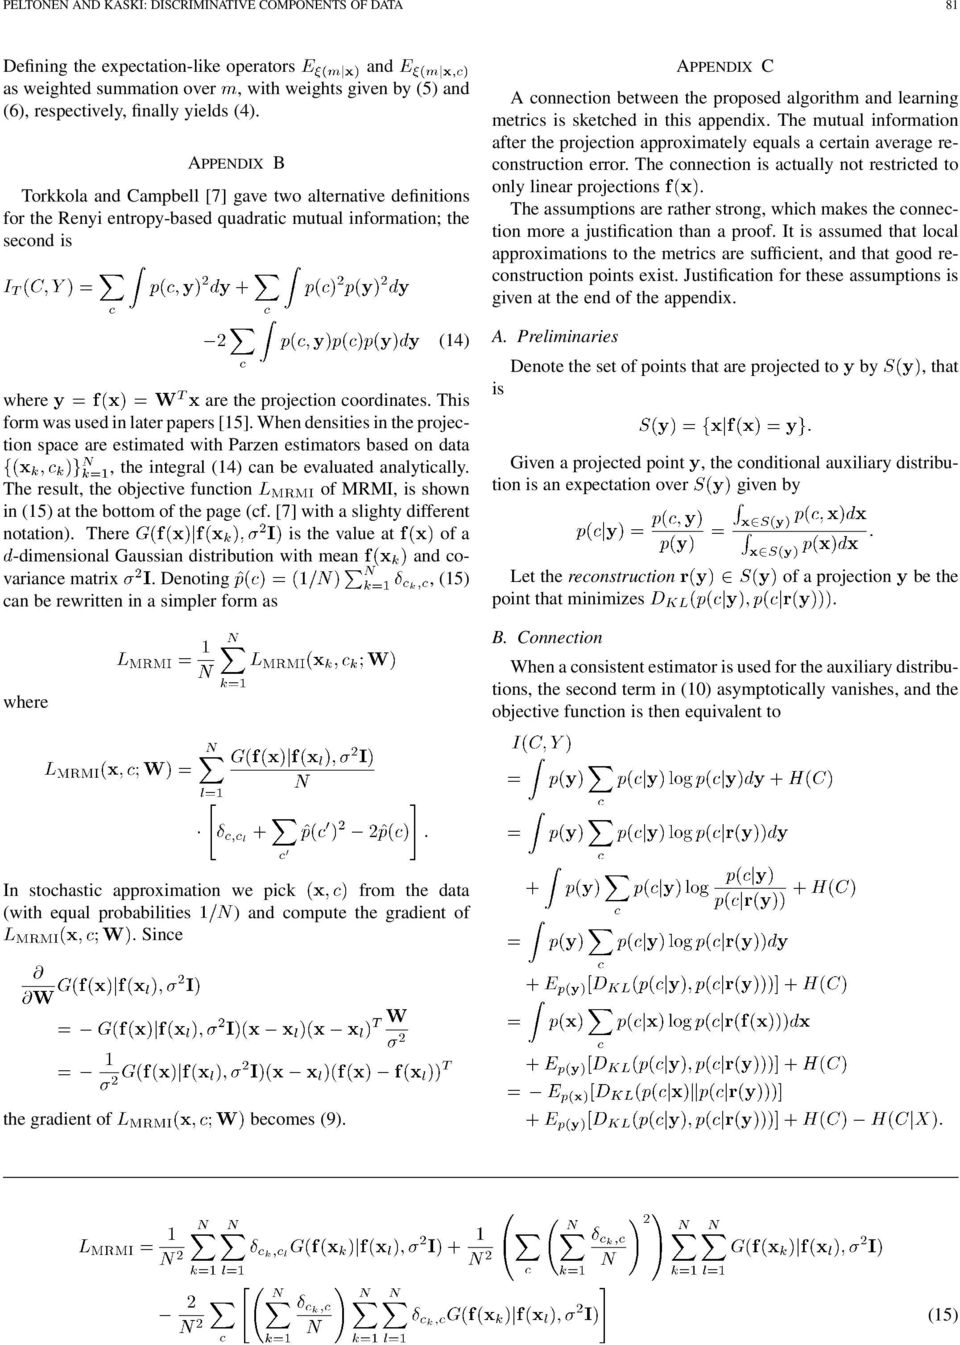 This form was used in later papers [15]. When densities in the projection space are estimated with Parzen estimators based on data, the integral (14) can be evaluated analytically.